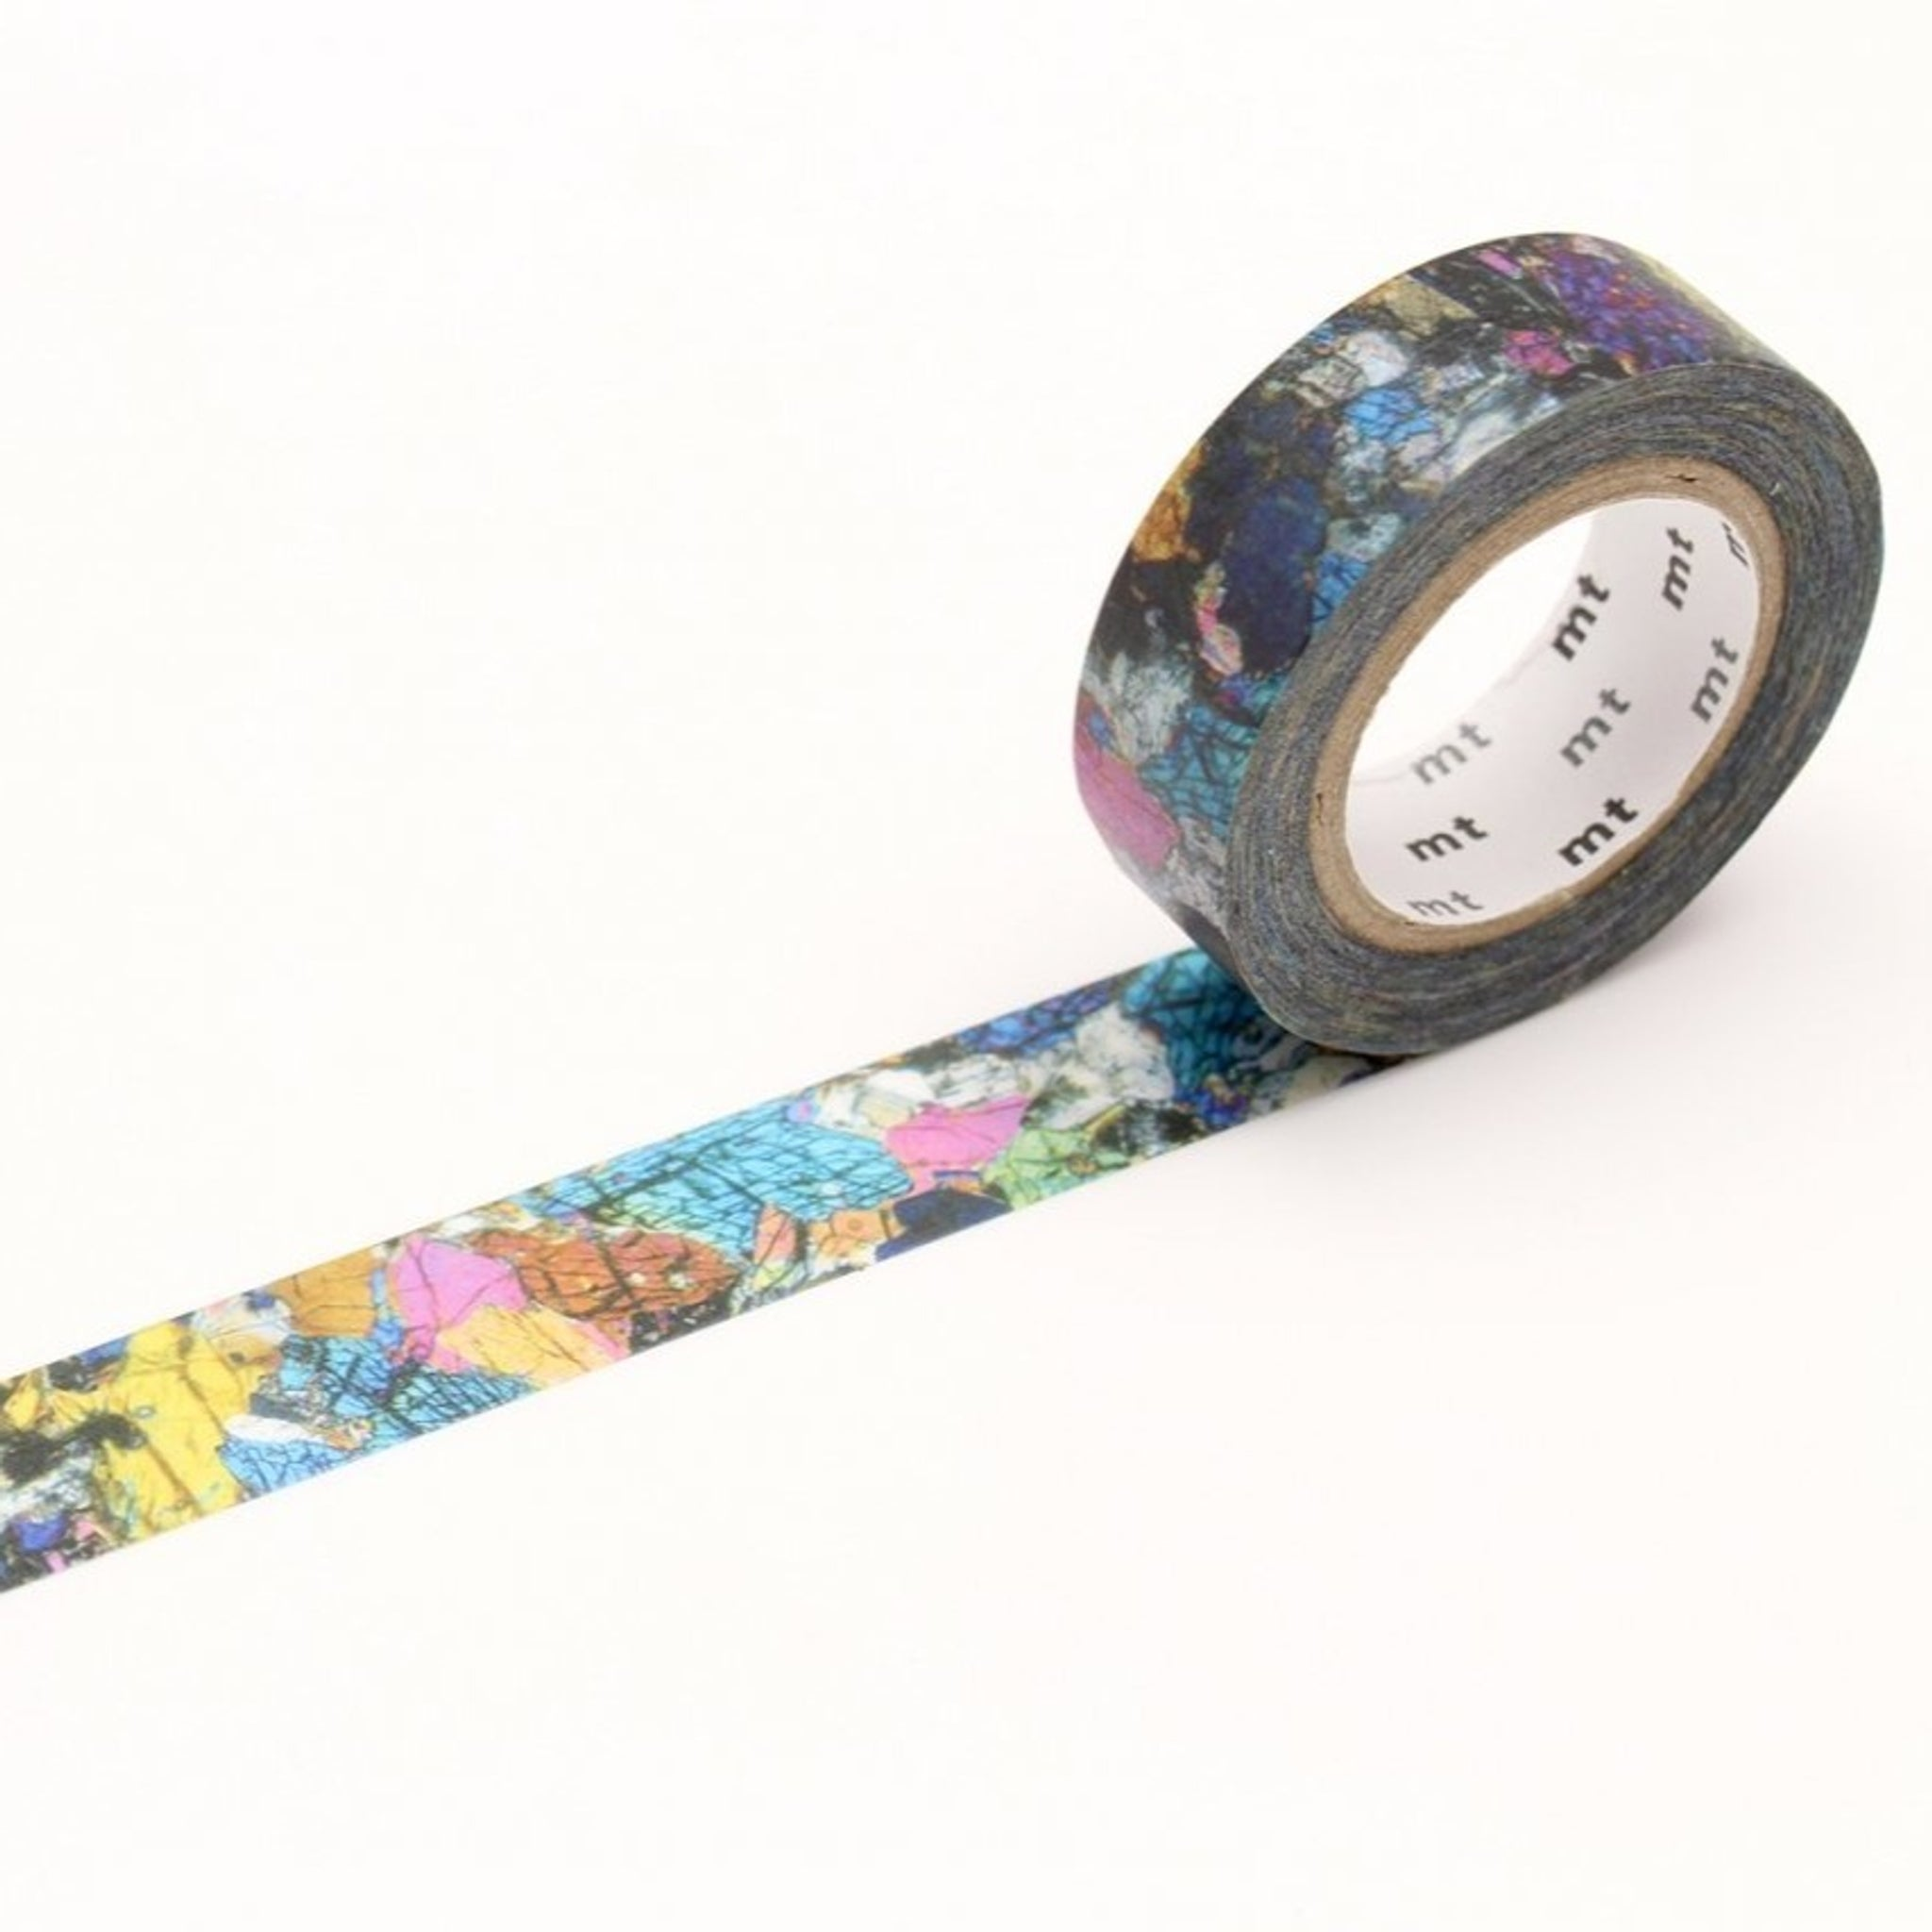 MT EX Washi Tape Phenocryst